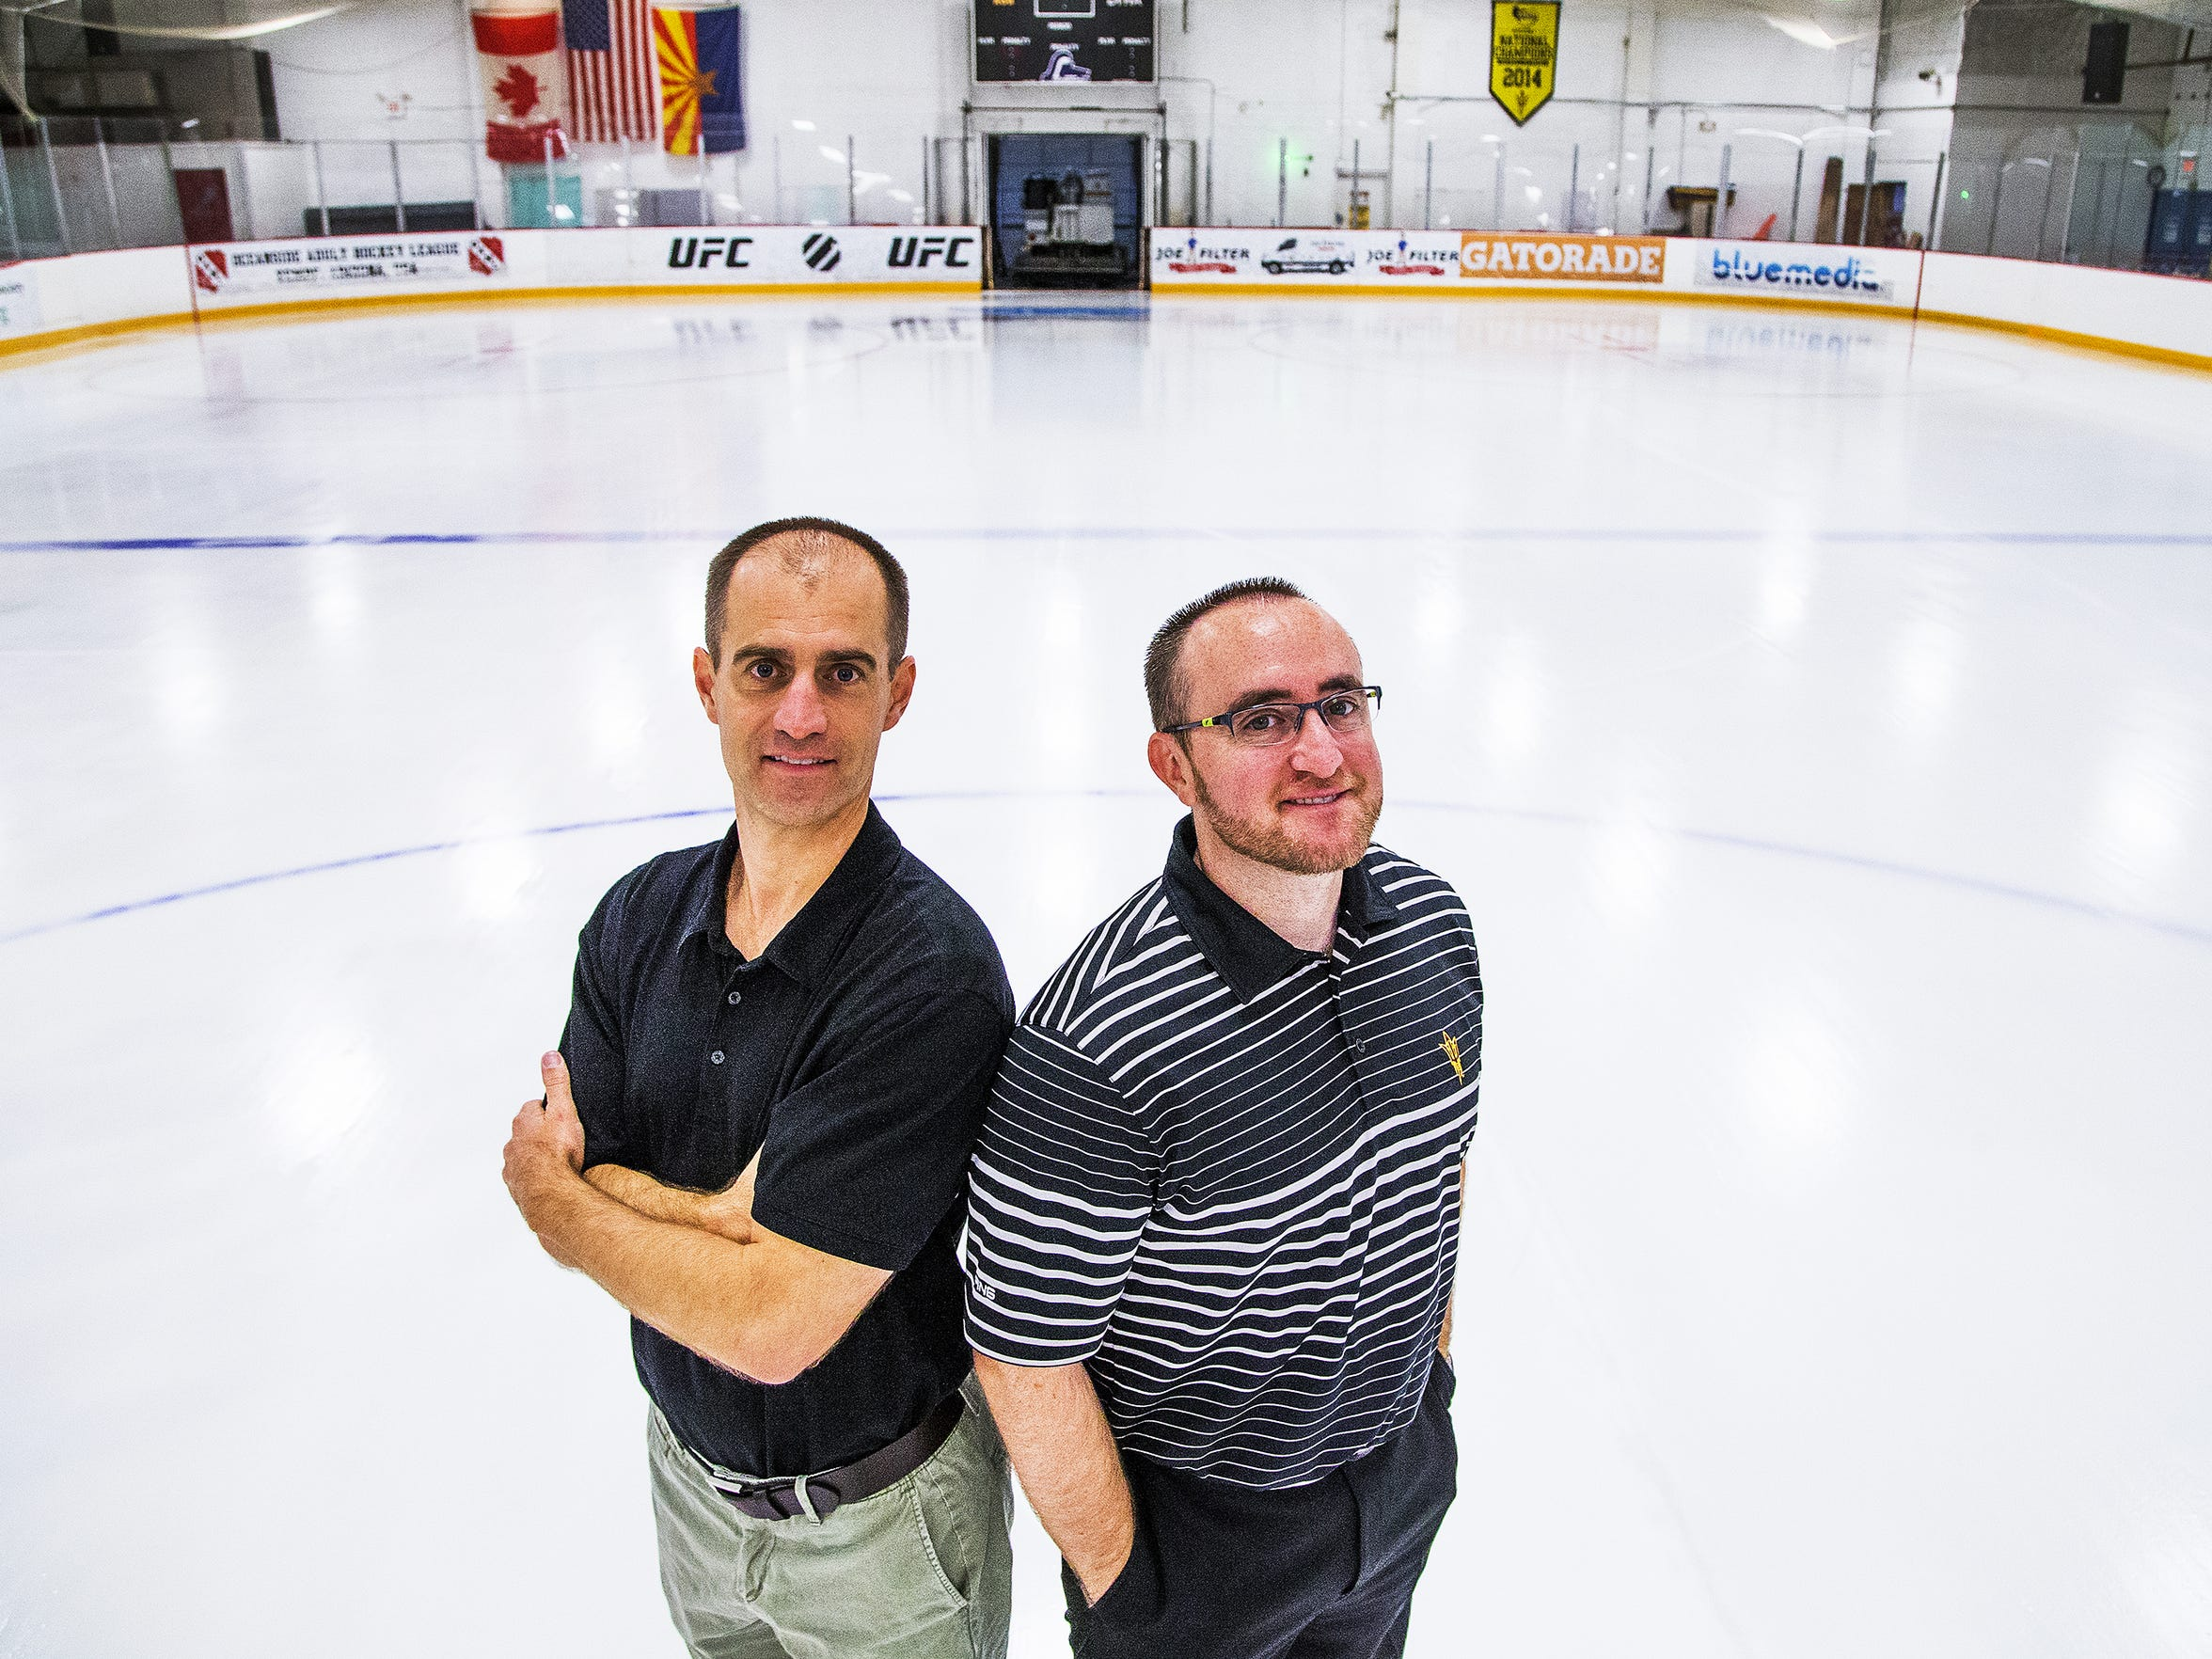 """""""I don't expect to be in the Frozen Four in the next two years, but we expect to win games,"""" said Greg Powers (right), ASU hockey coach."""